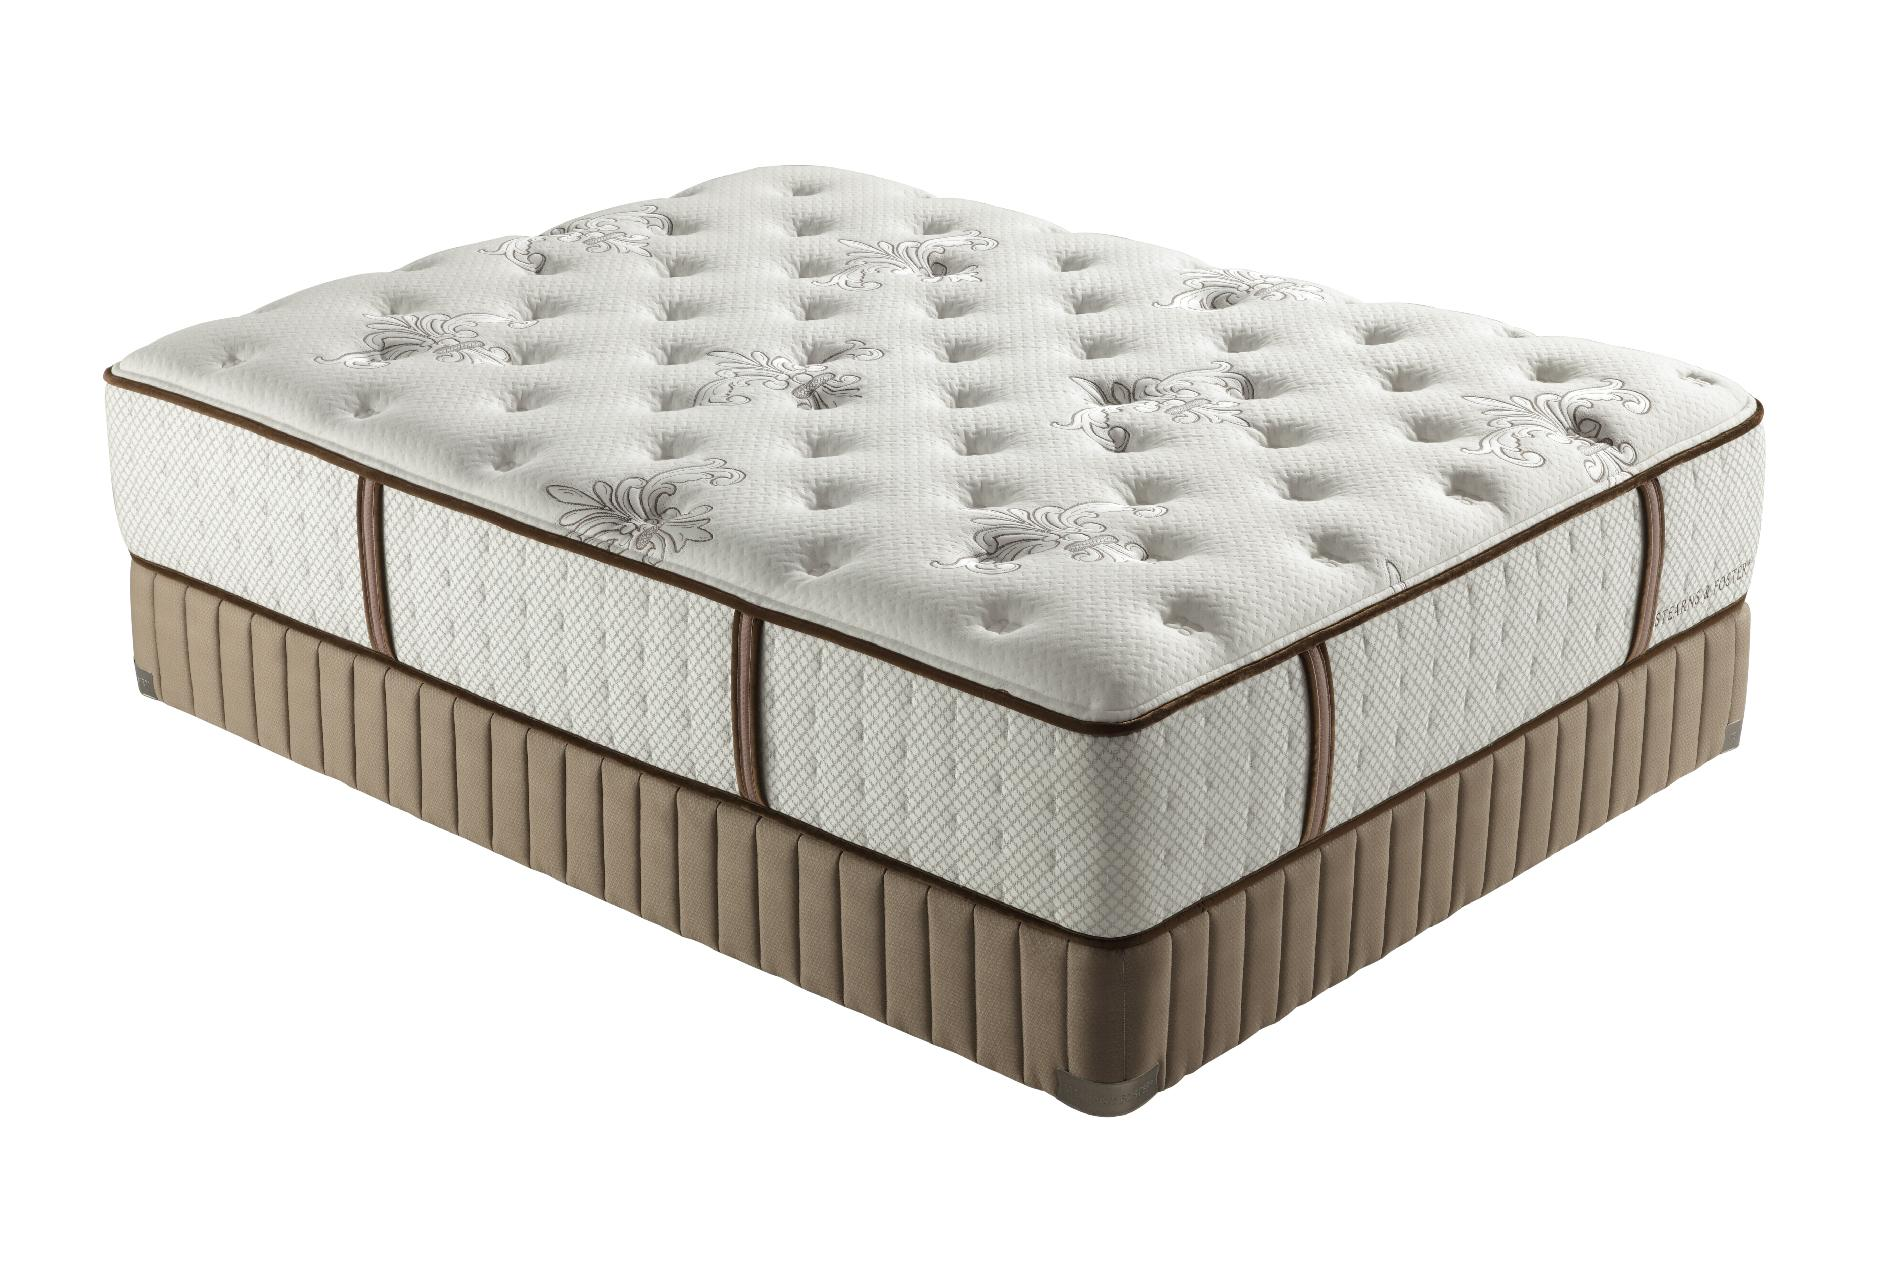 Stearns & Foster Estate Chasity Plush Queen Mattress Only